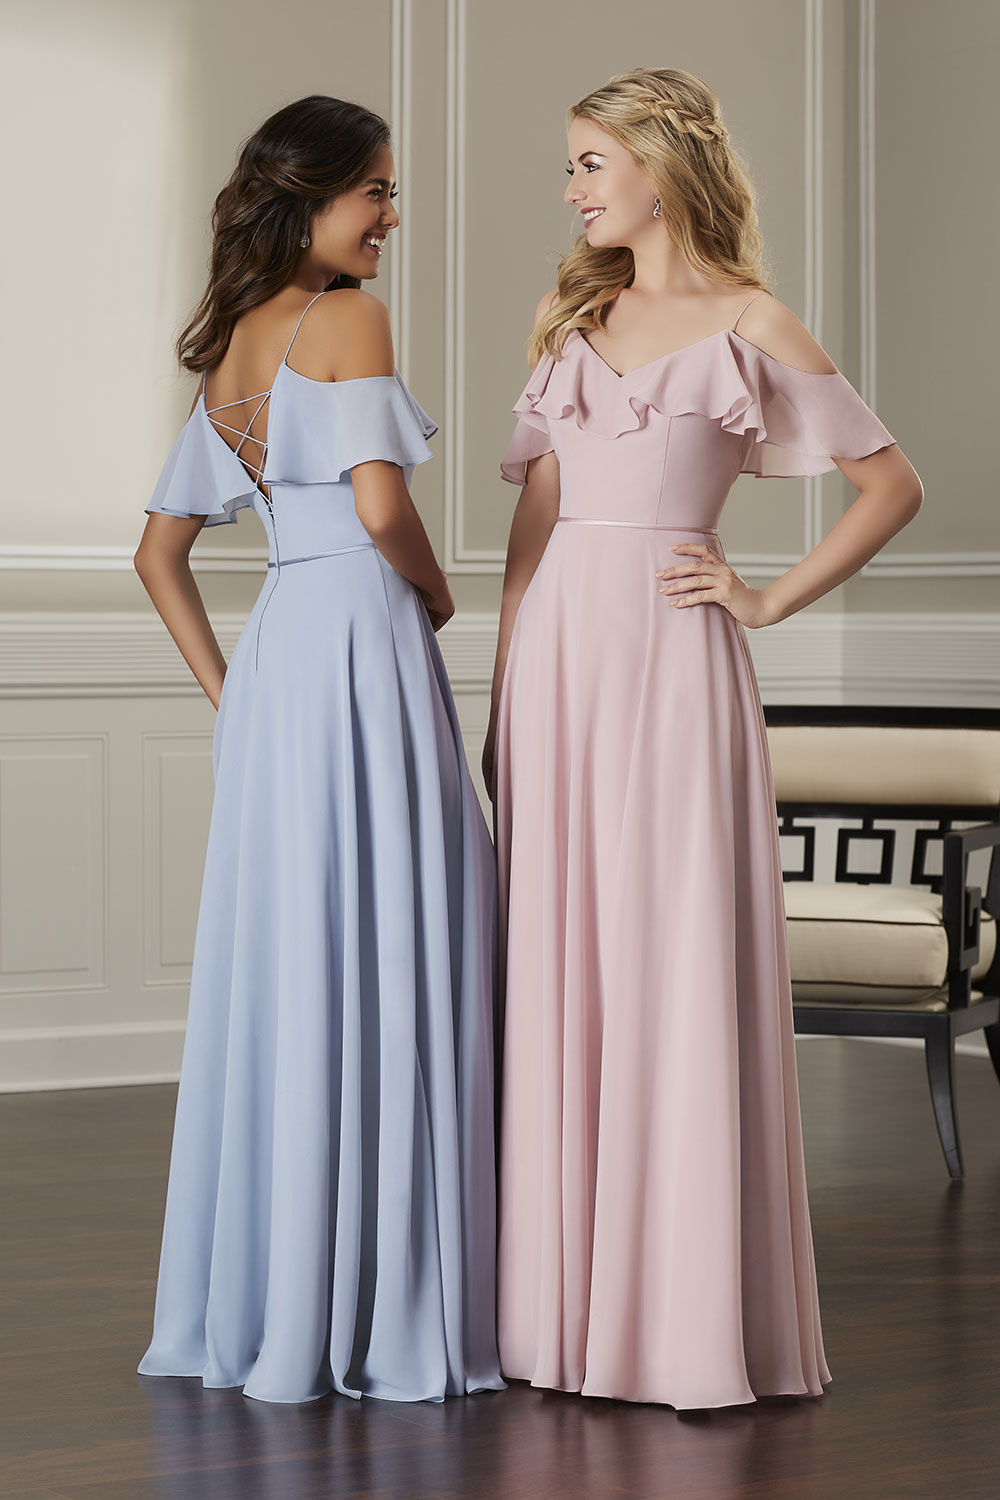 bridesmaid-dresses-jacquelin-bridals-canada-26834